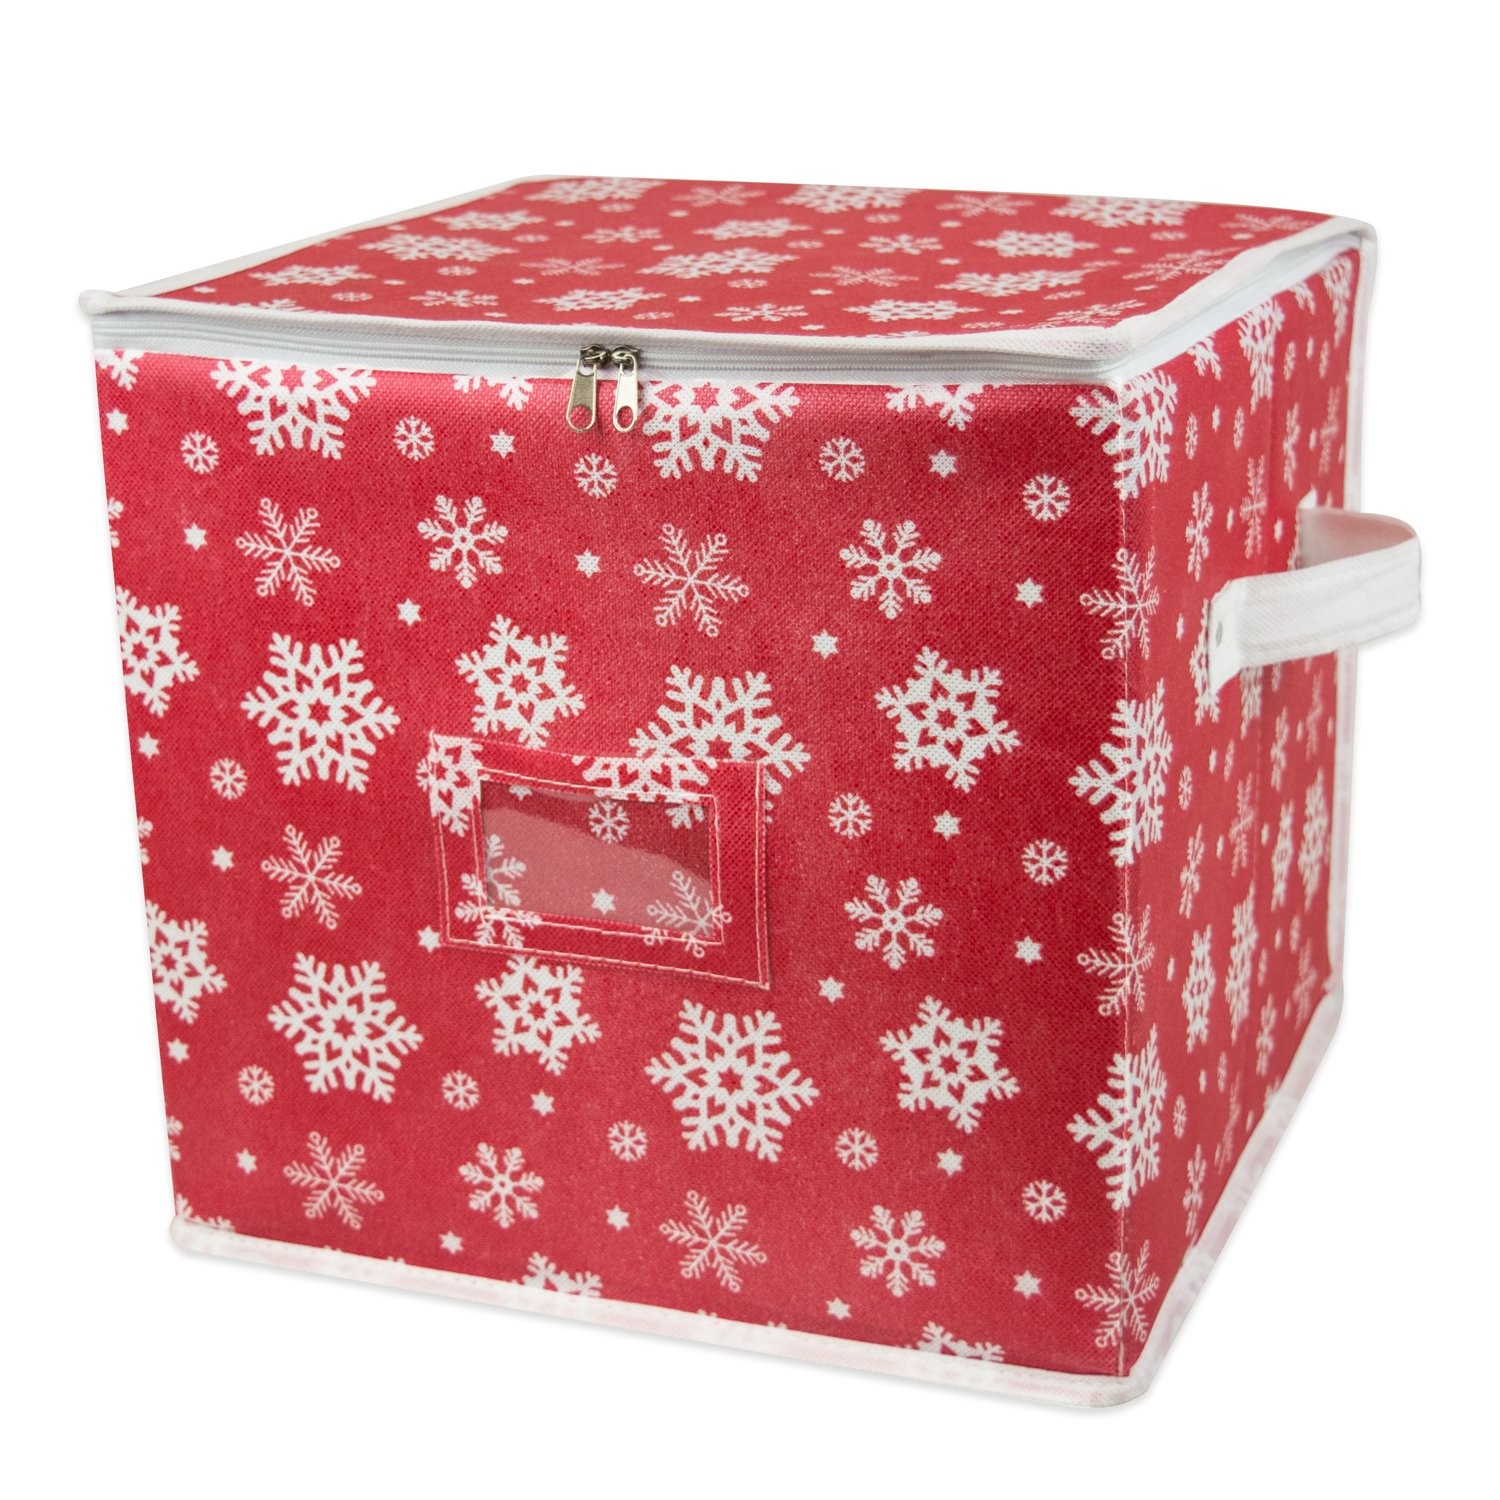 DII Holiday Ornament Storage Bin with Dividers & Separators to Protect Fragile Christmas Tree Decorations (Holds 48 Ball Decorations) - Holiday Stripe, Small CAMZ35754